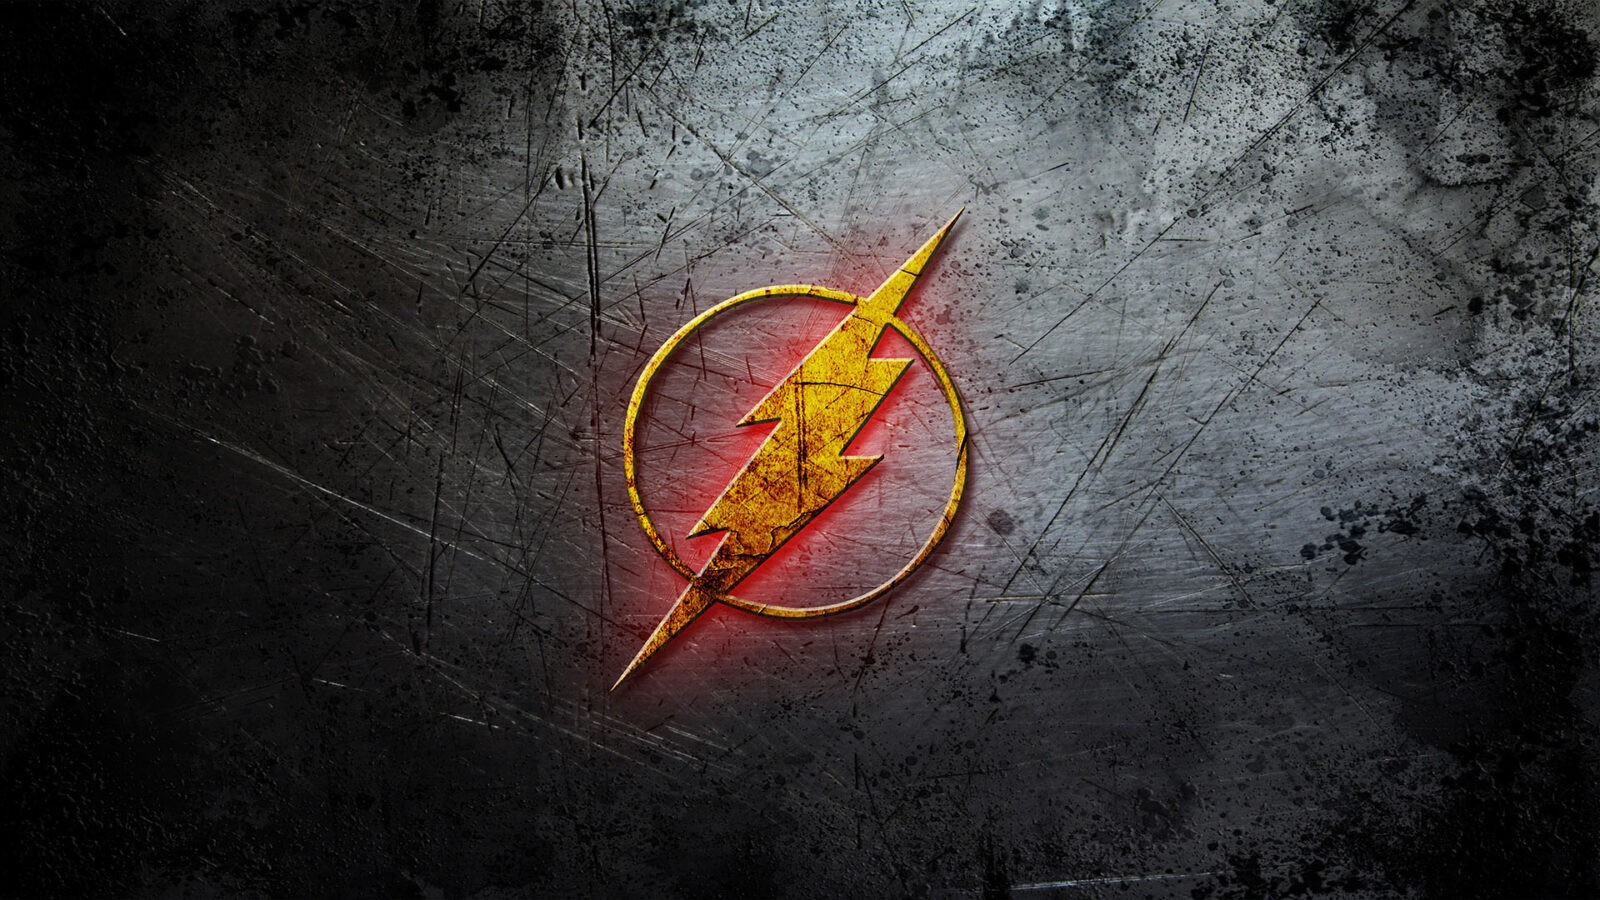 Abstract Wallpaper Hd 9 The Flash Logo Hd Wallpapers Free Download